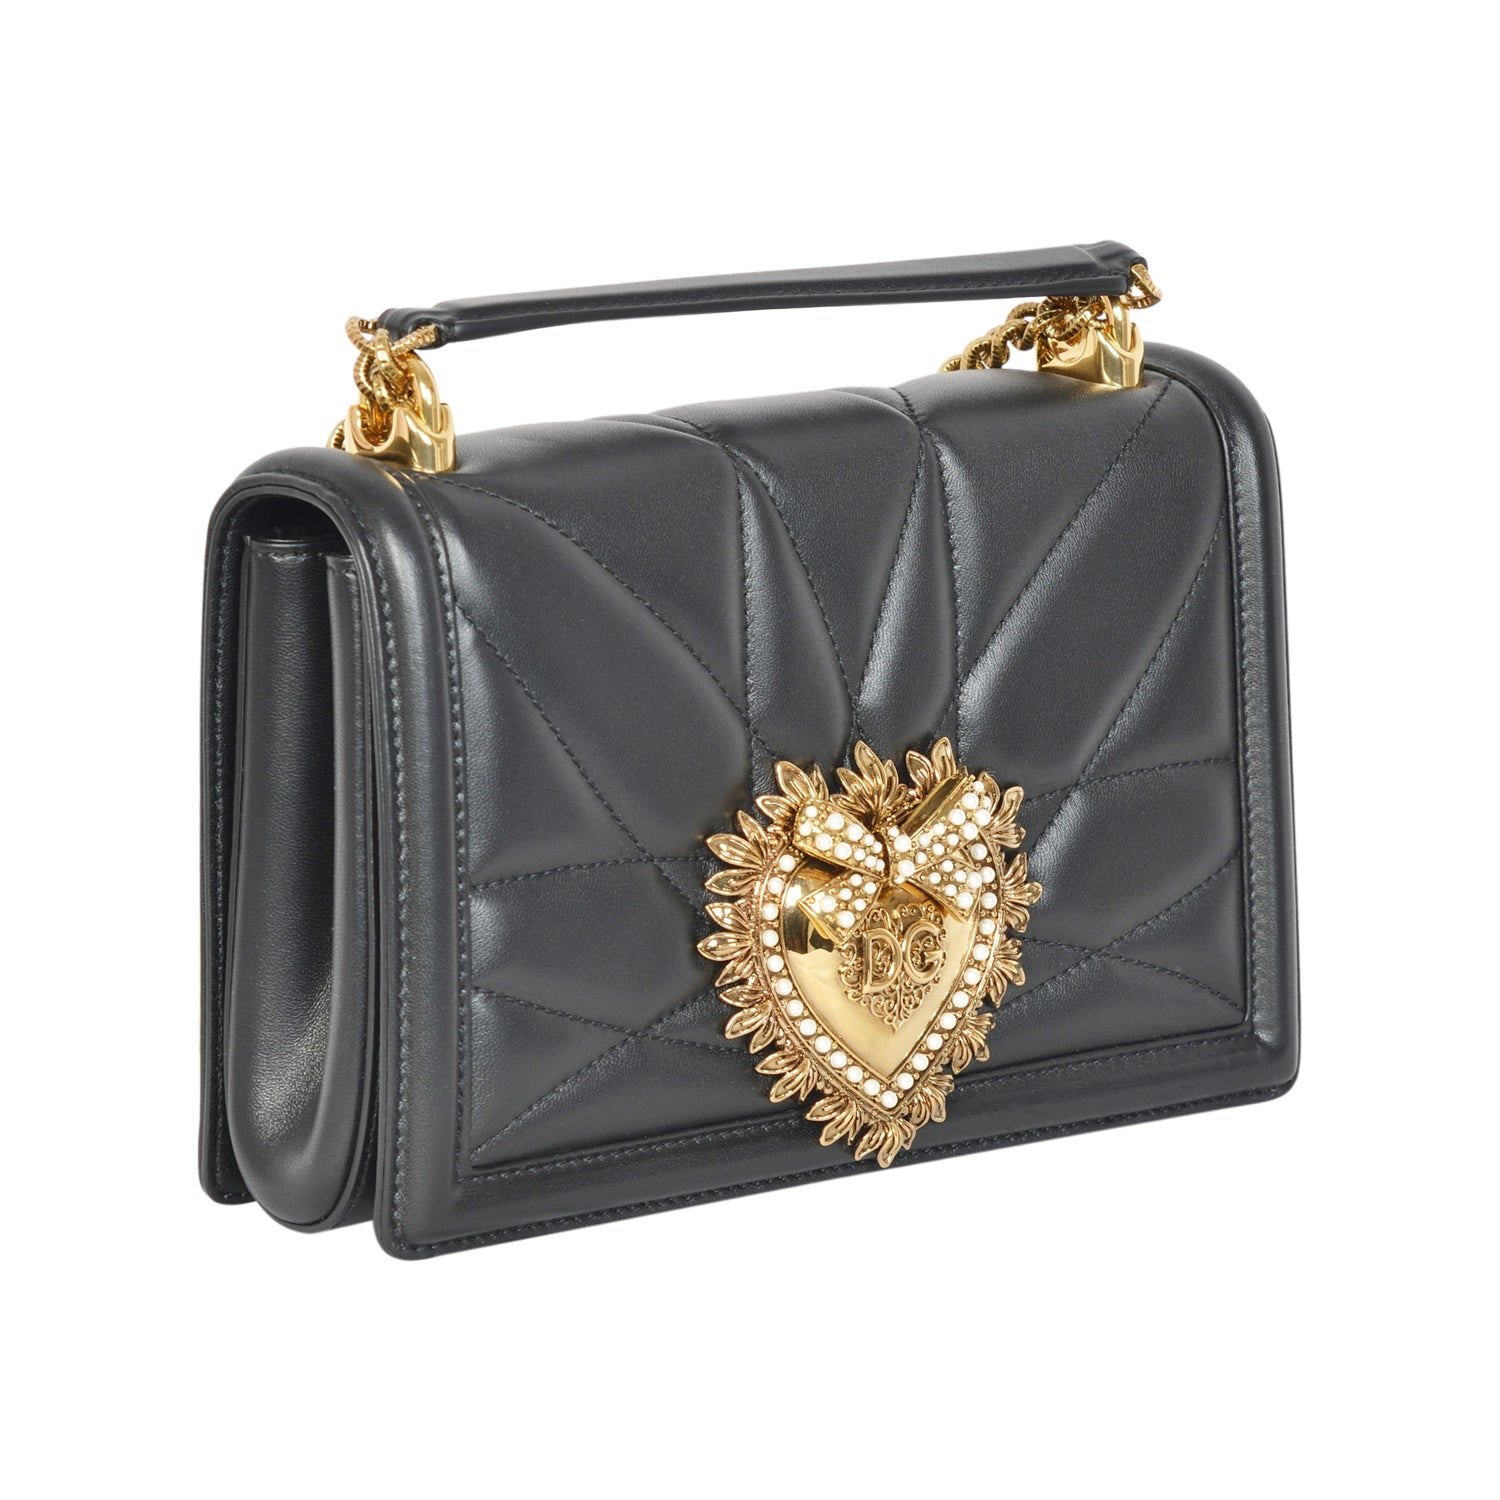 D&G devotion quilted black crossbody bag in nappa leather. | Shop Luxury Handbag Online